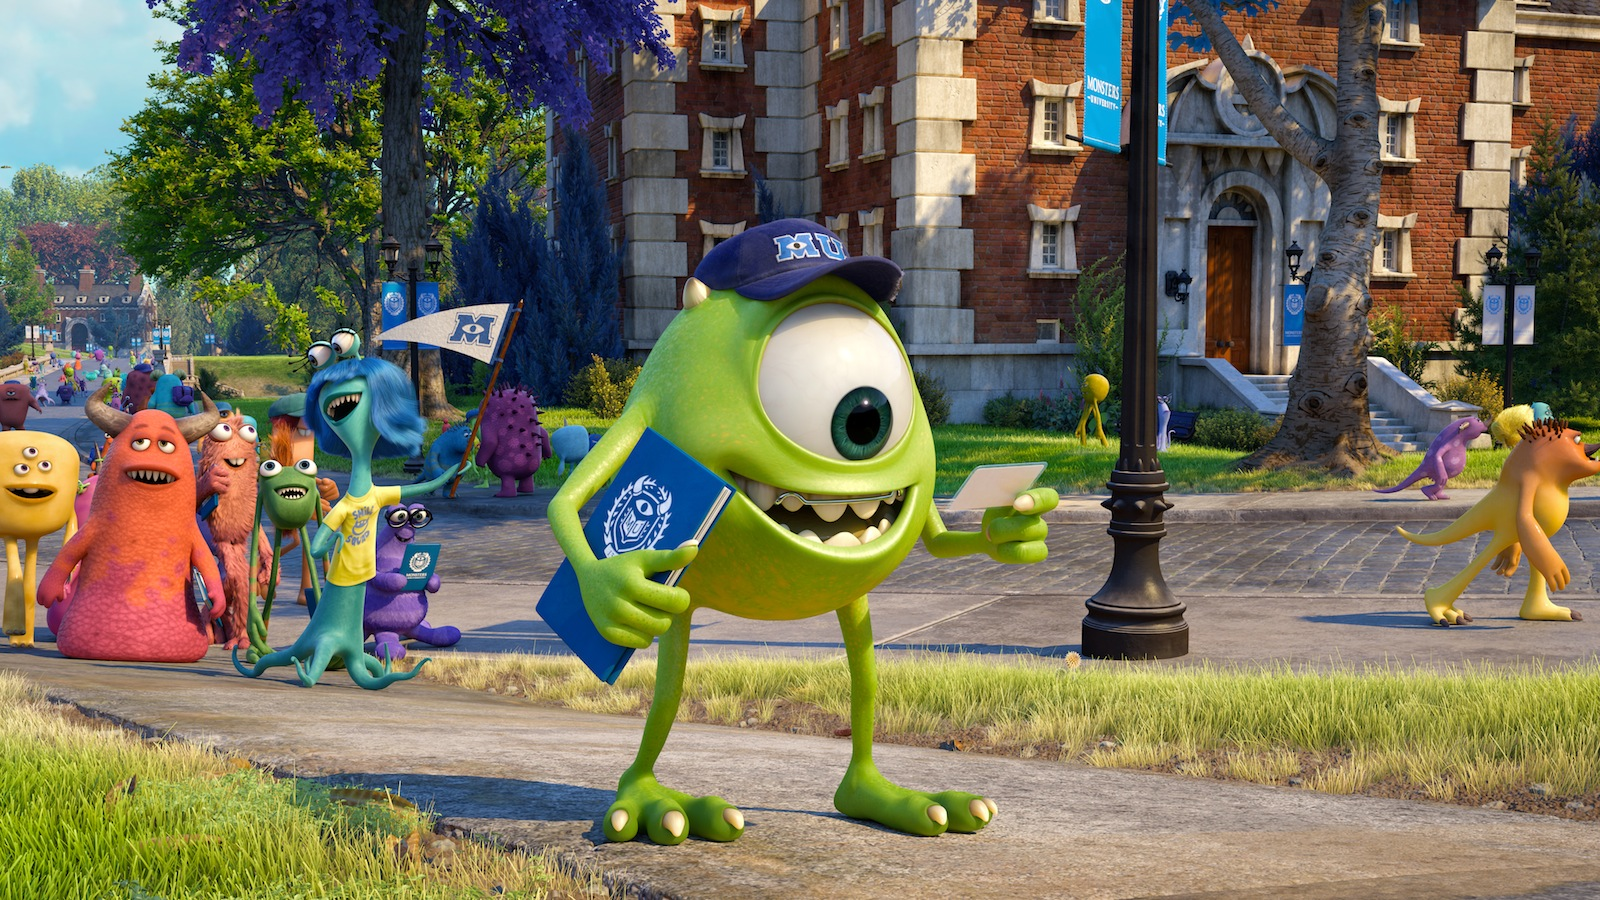 'Monsters University' Opens Big With $82 Million (Updated)